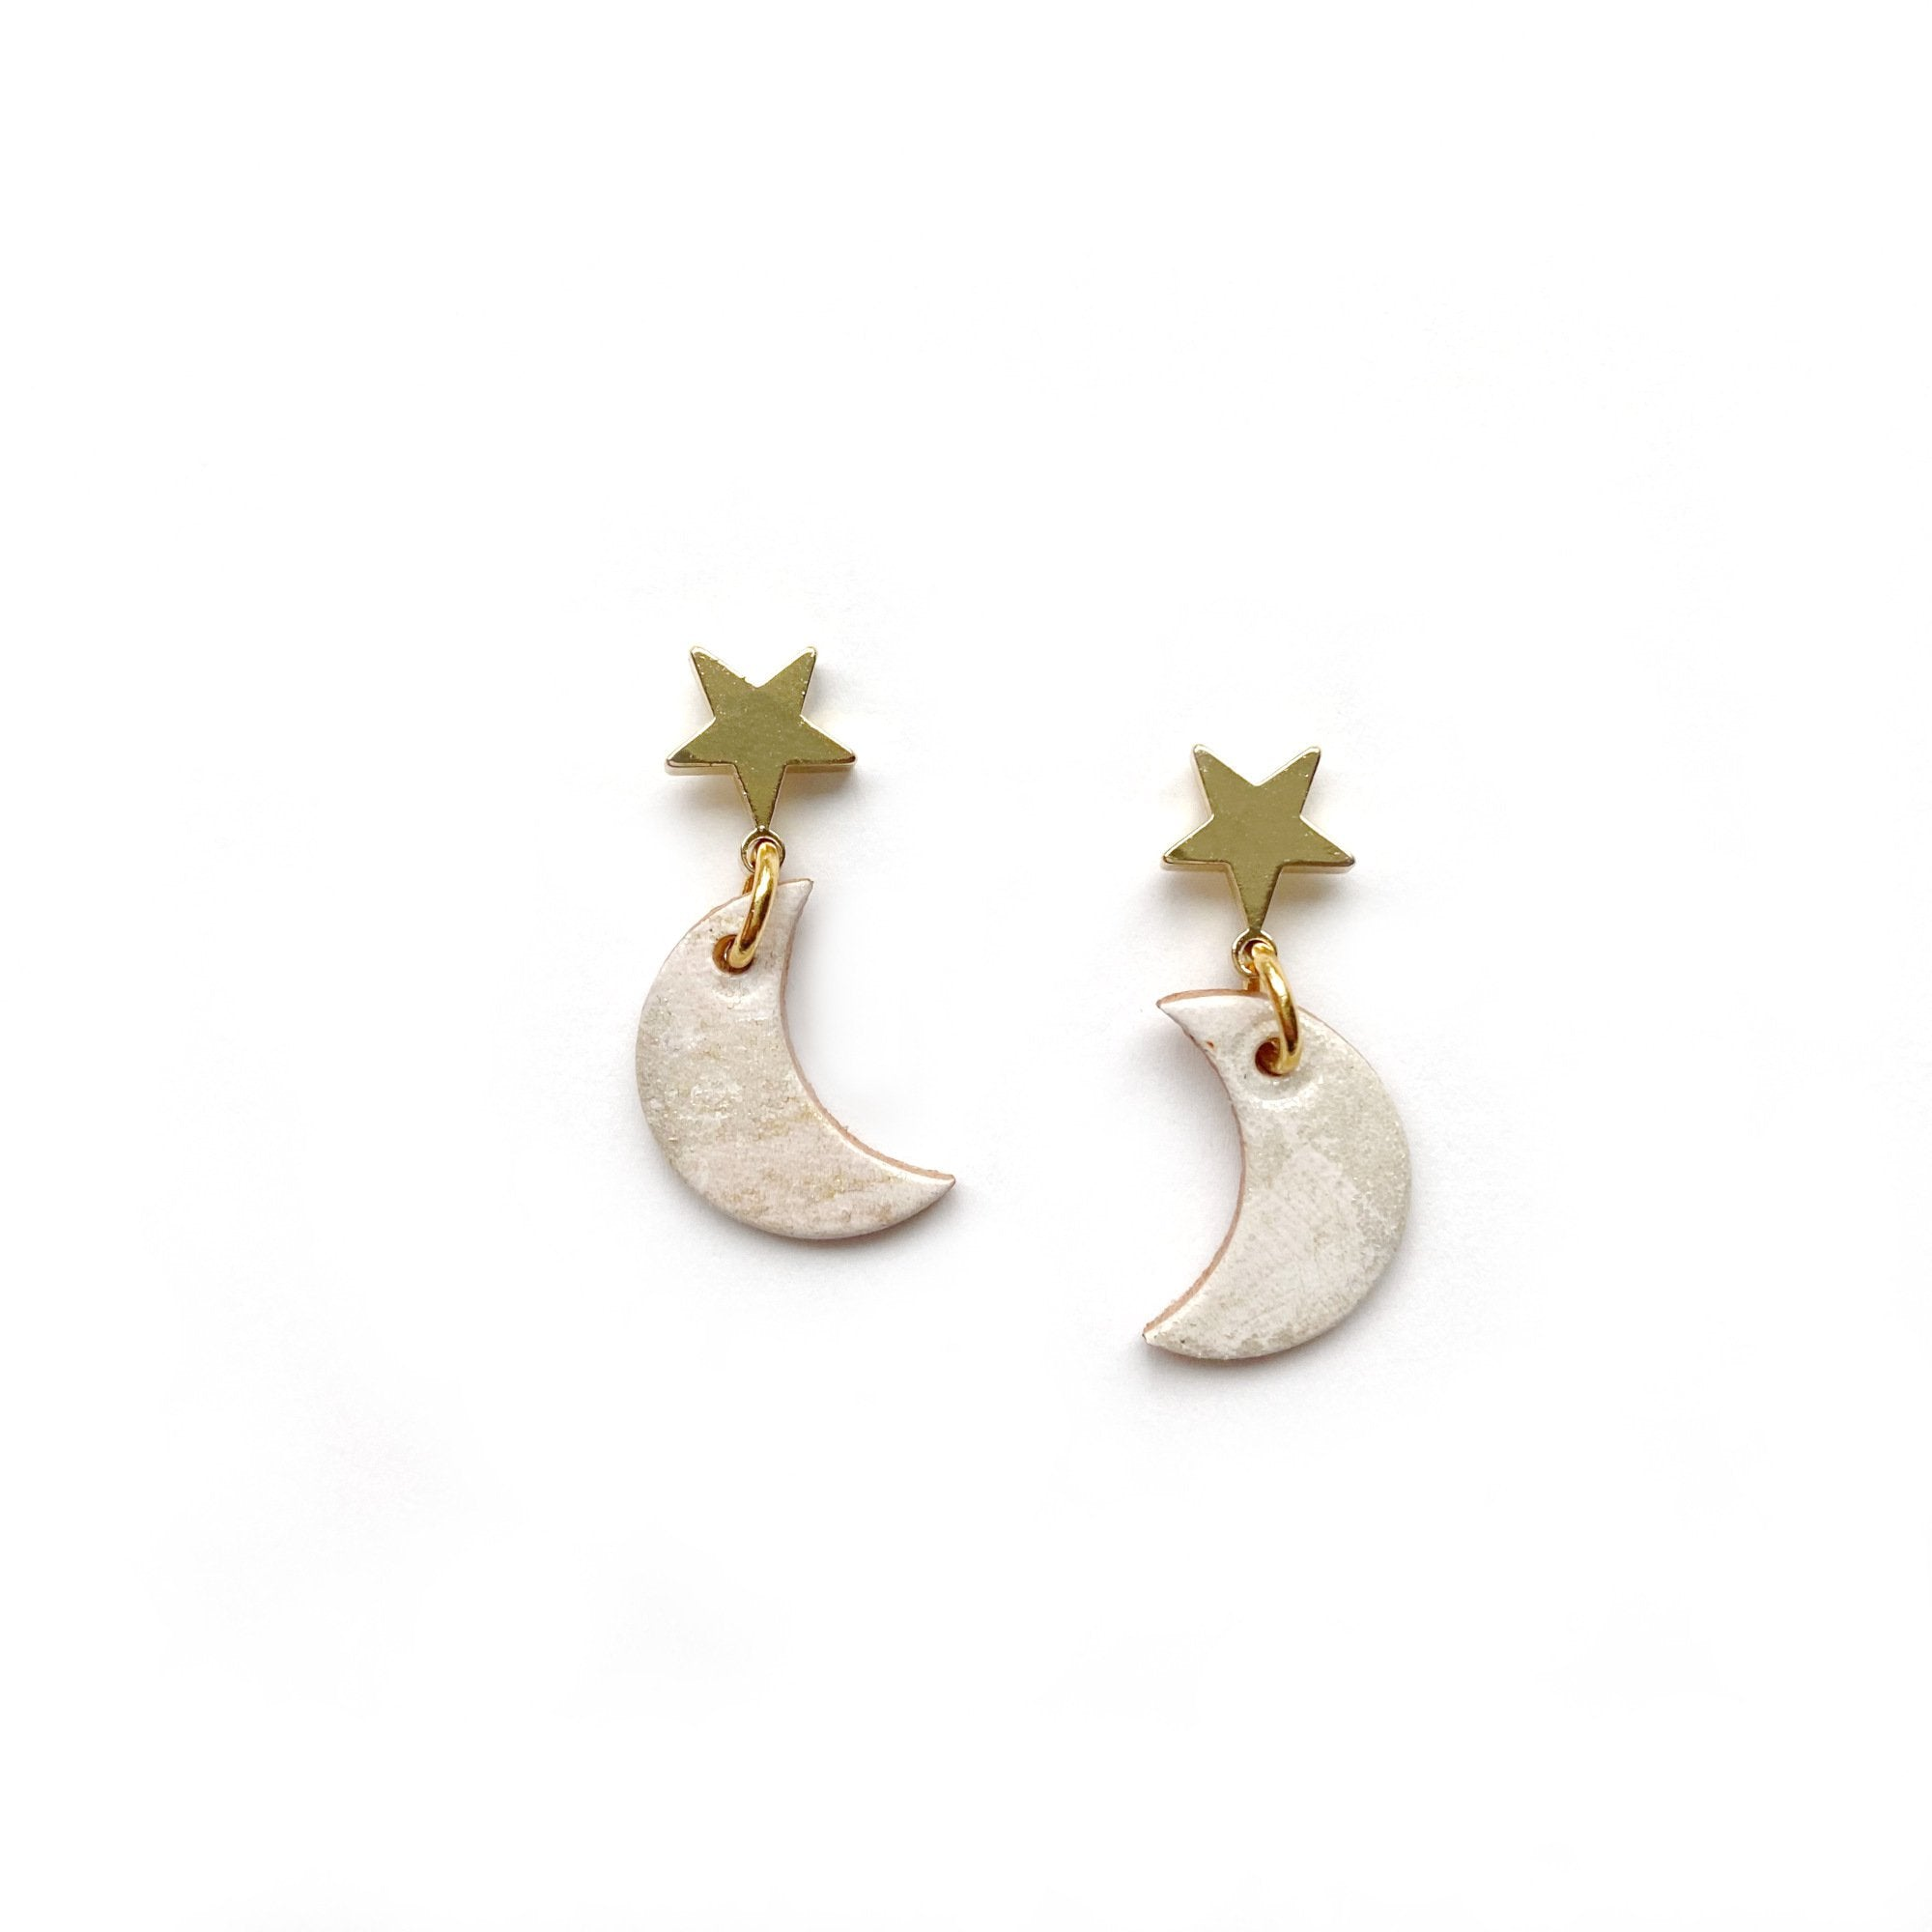 Small leather moon earrings by Two boss beads